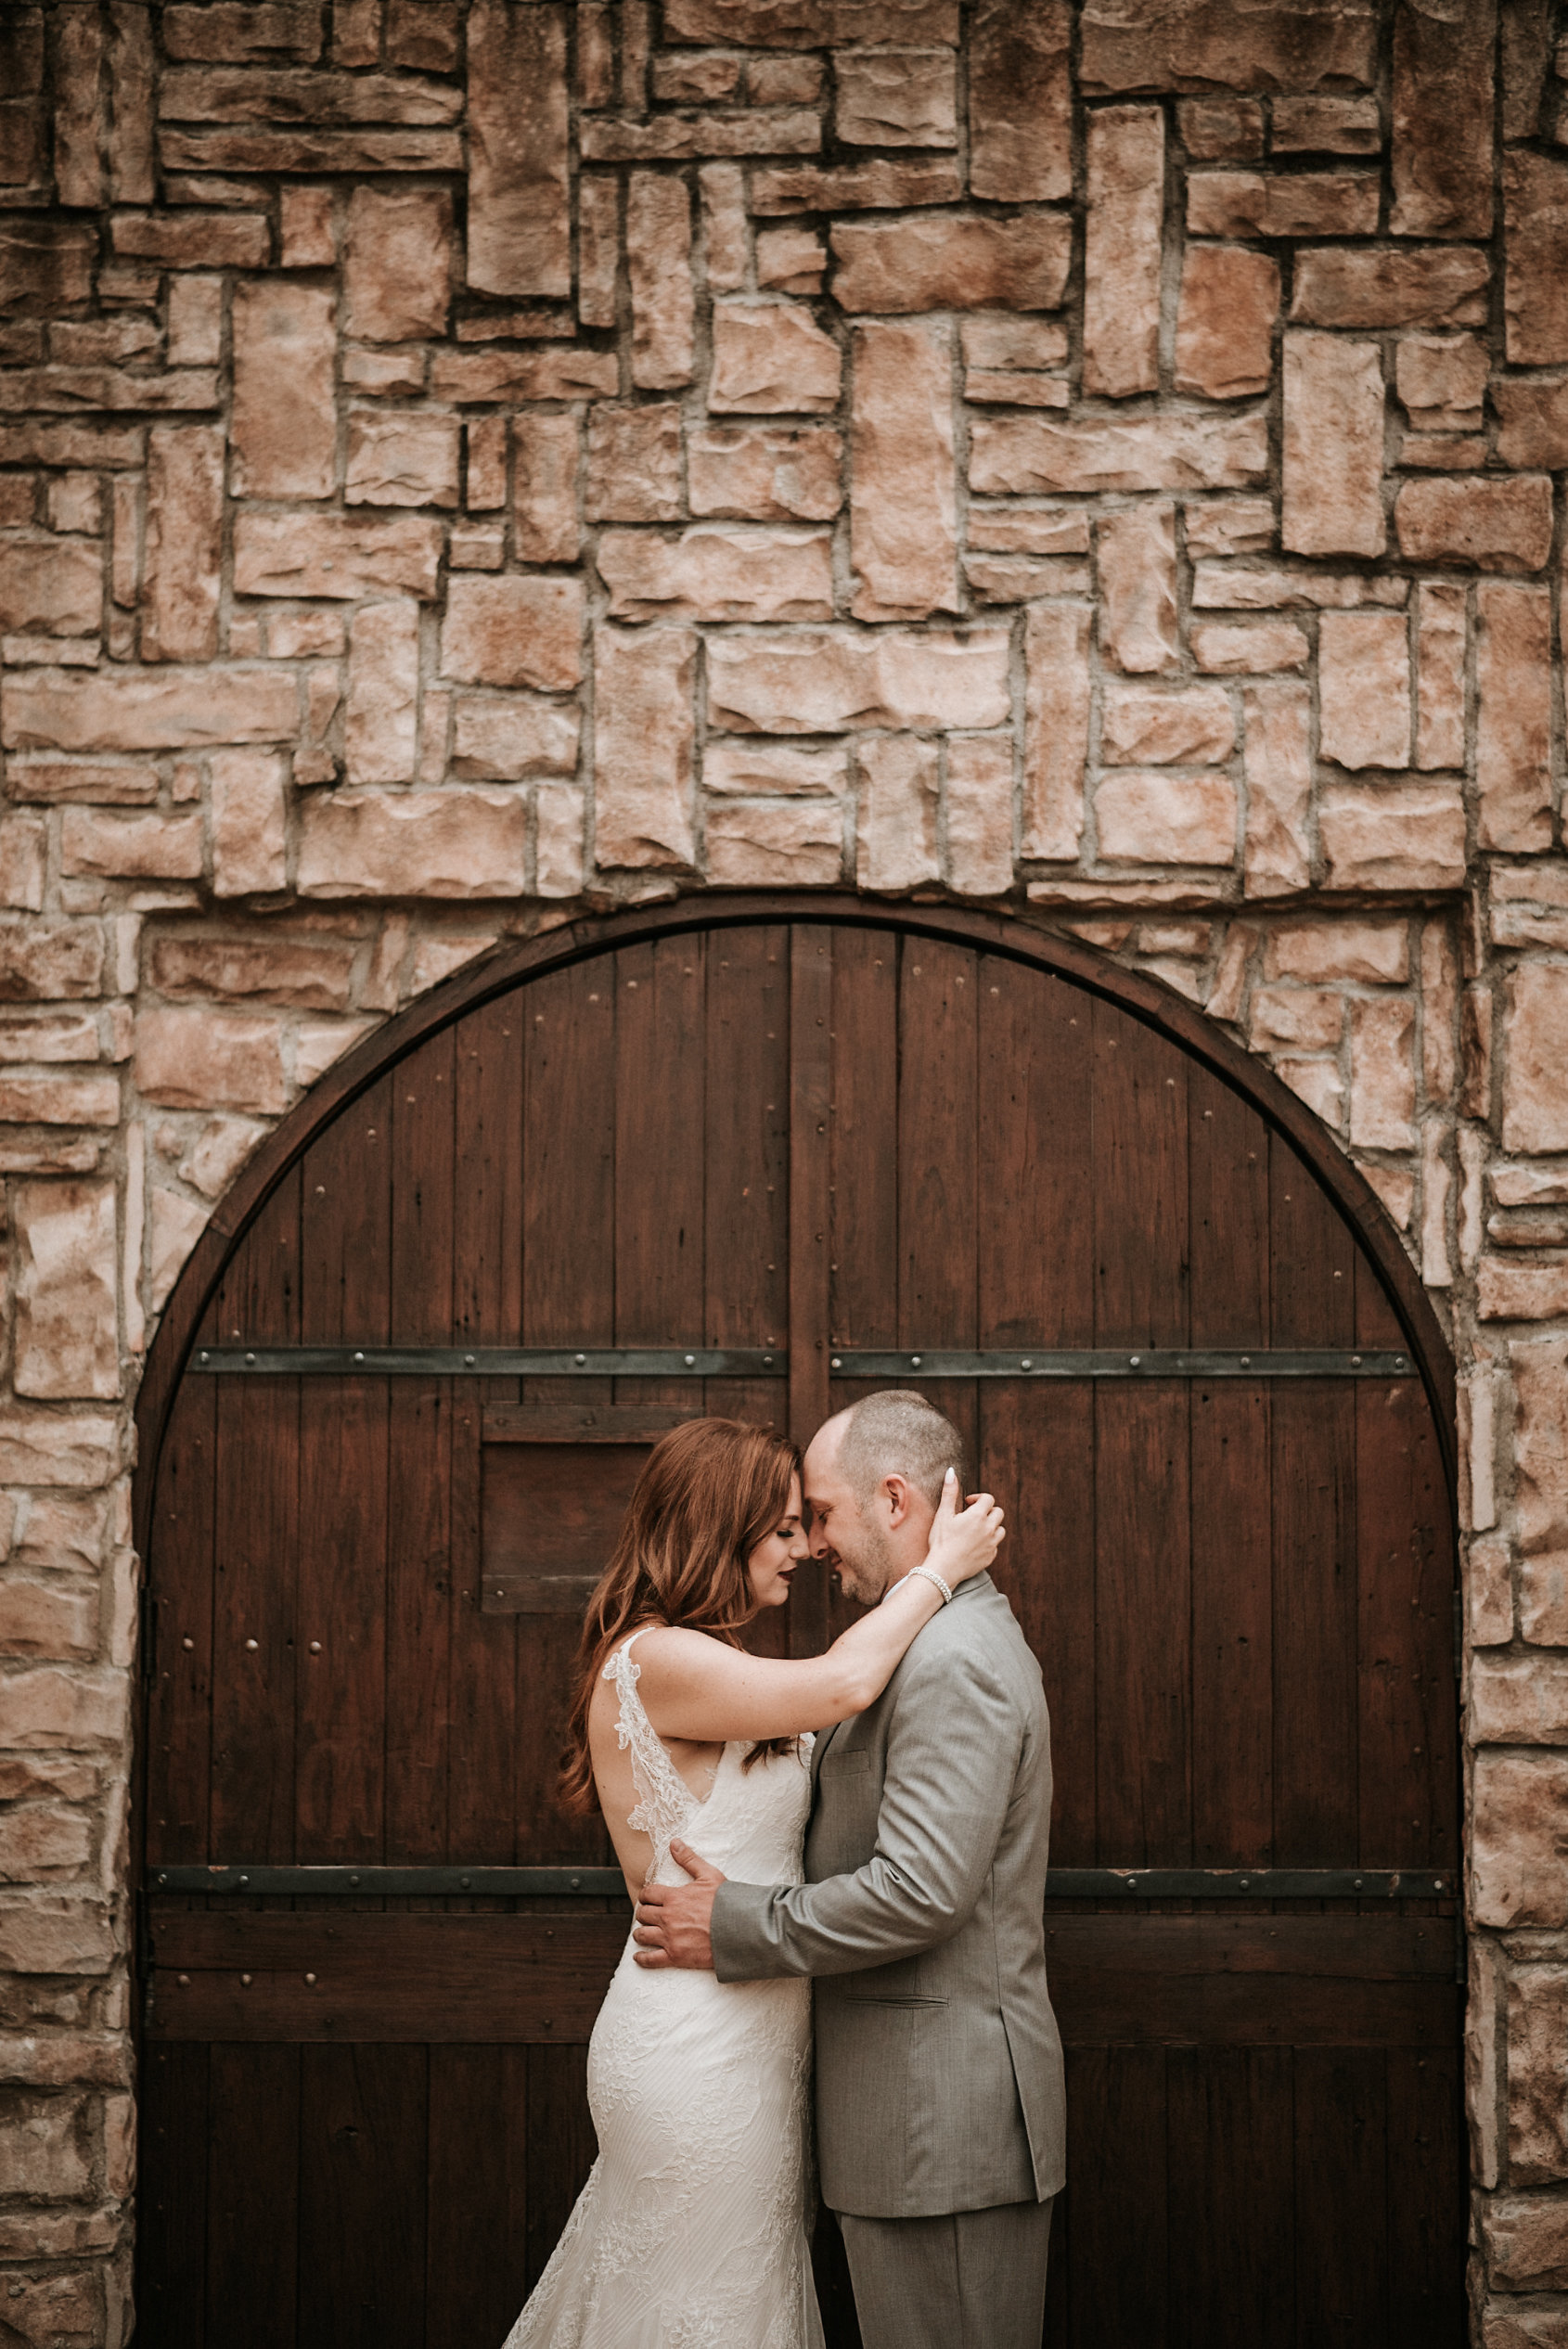 Bride and groom embracing in front of door